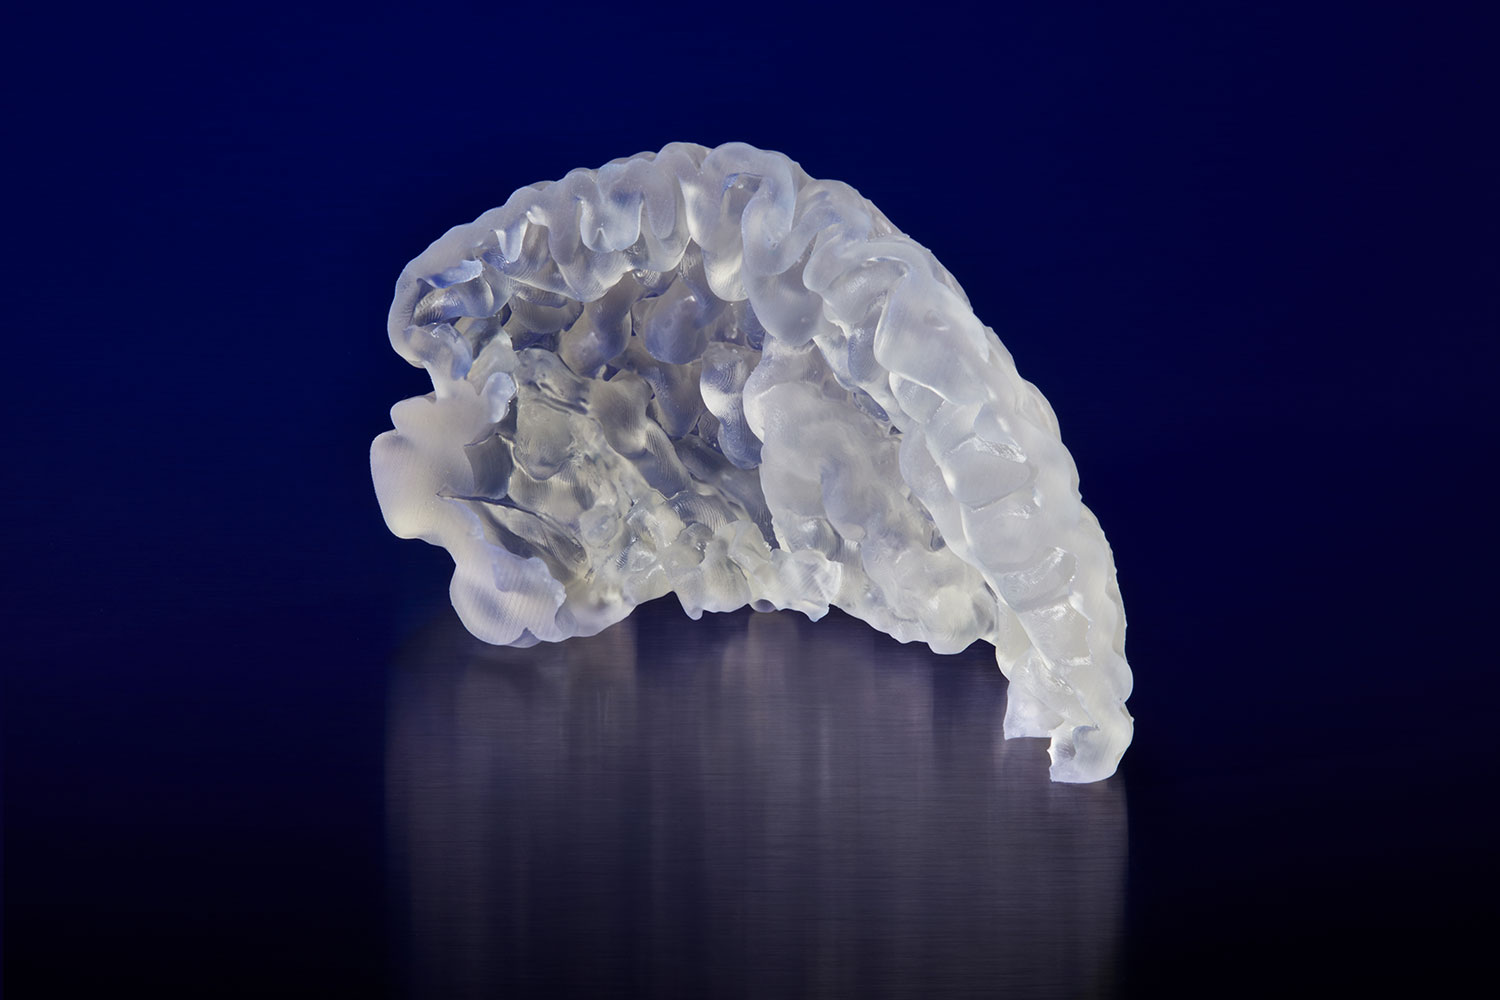 3D printed anatomical model of a prefrontal cortex